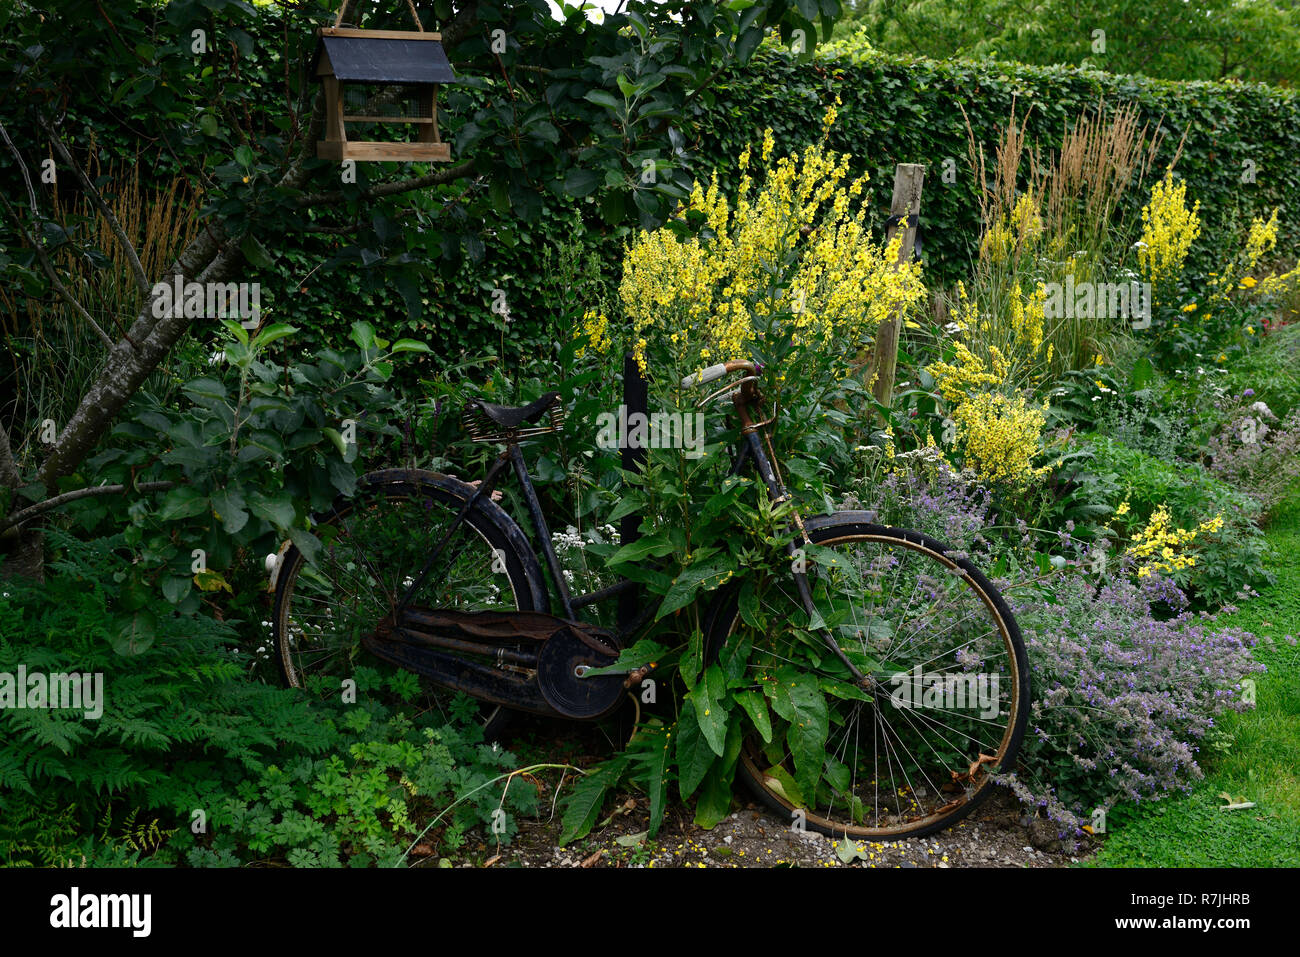 Old Bicycle High Nelly Cycle Bike Bikes Garden Gardens Design